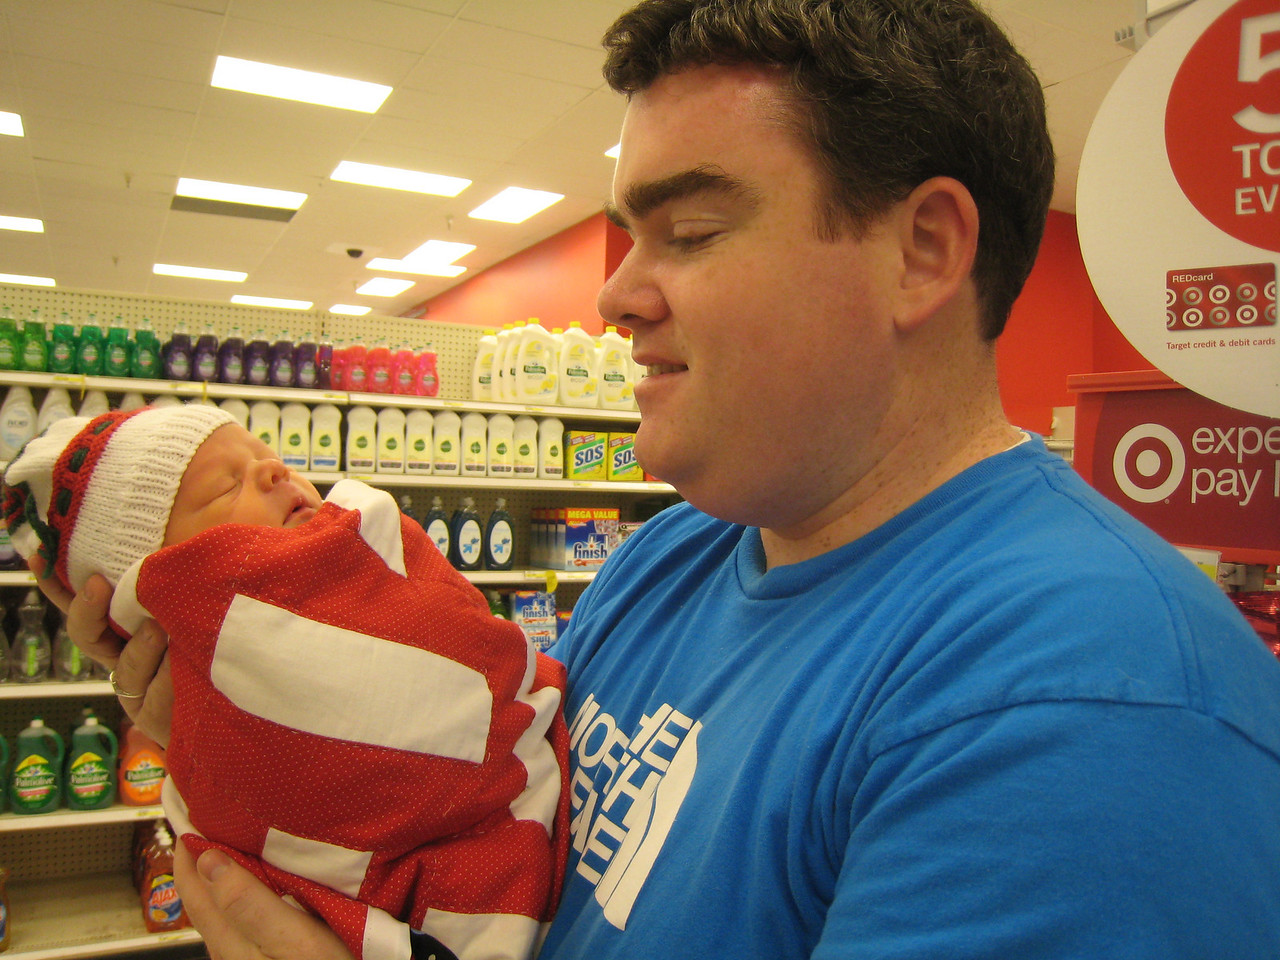 Max's first outing -- a trip to Target